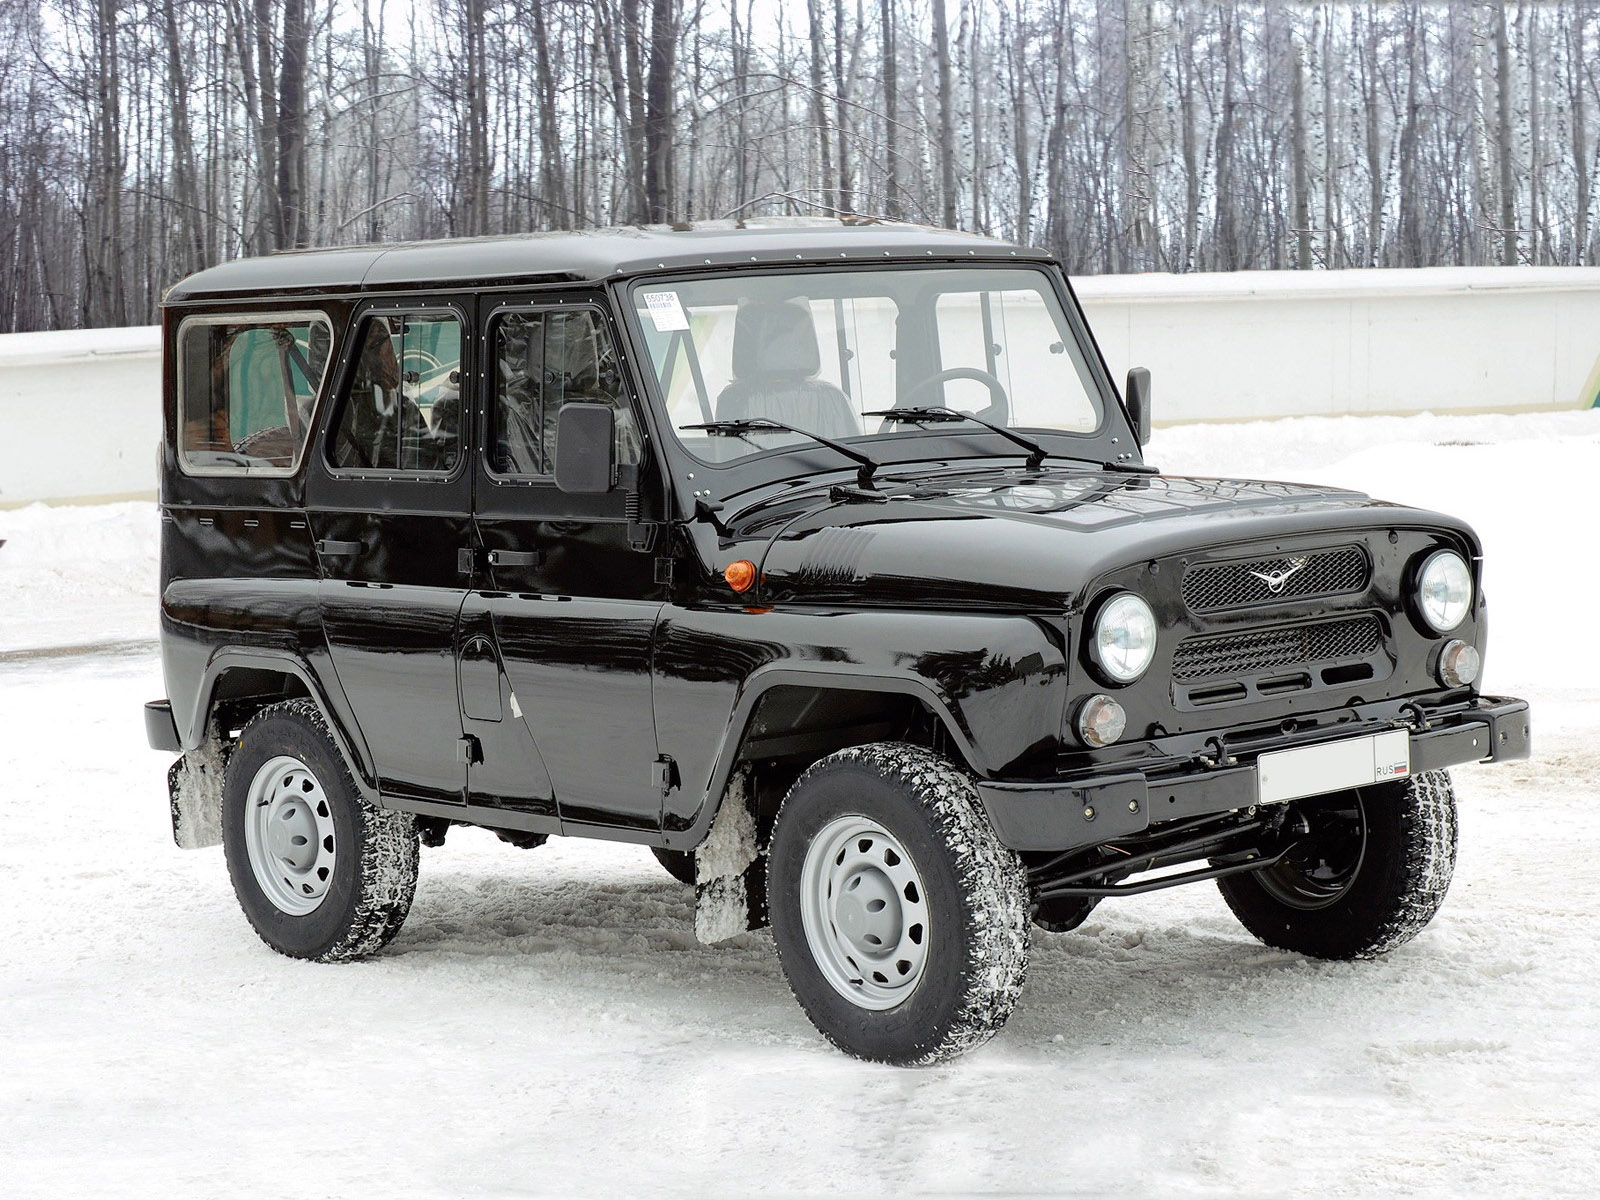 uaz 469 uaz 469 photo 01 car in pictures car photo gallery. Black Bedroom Furniture Sets. Home Design Ideas